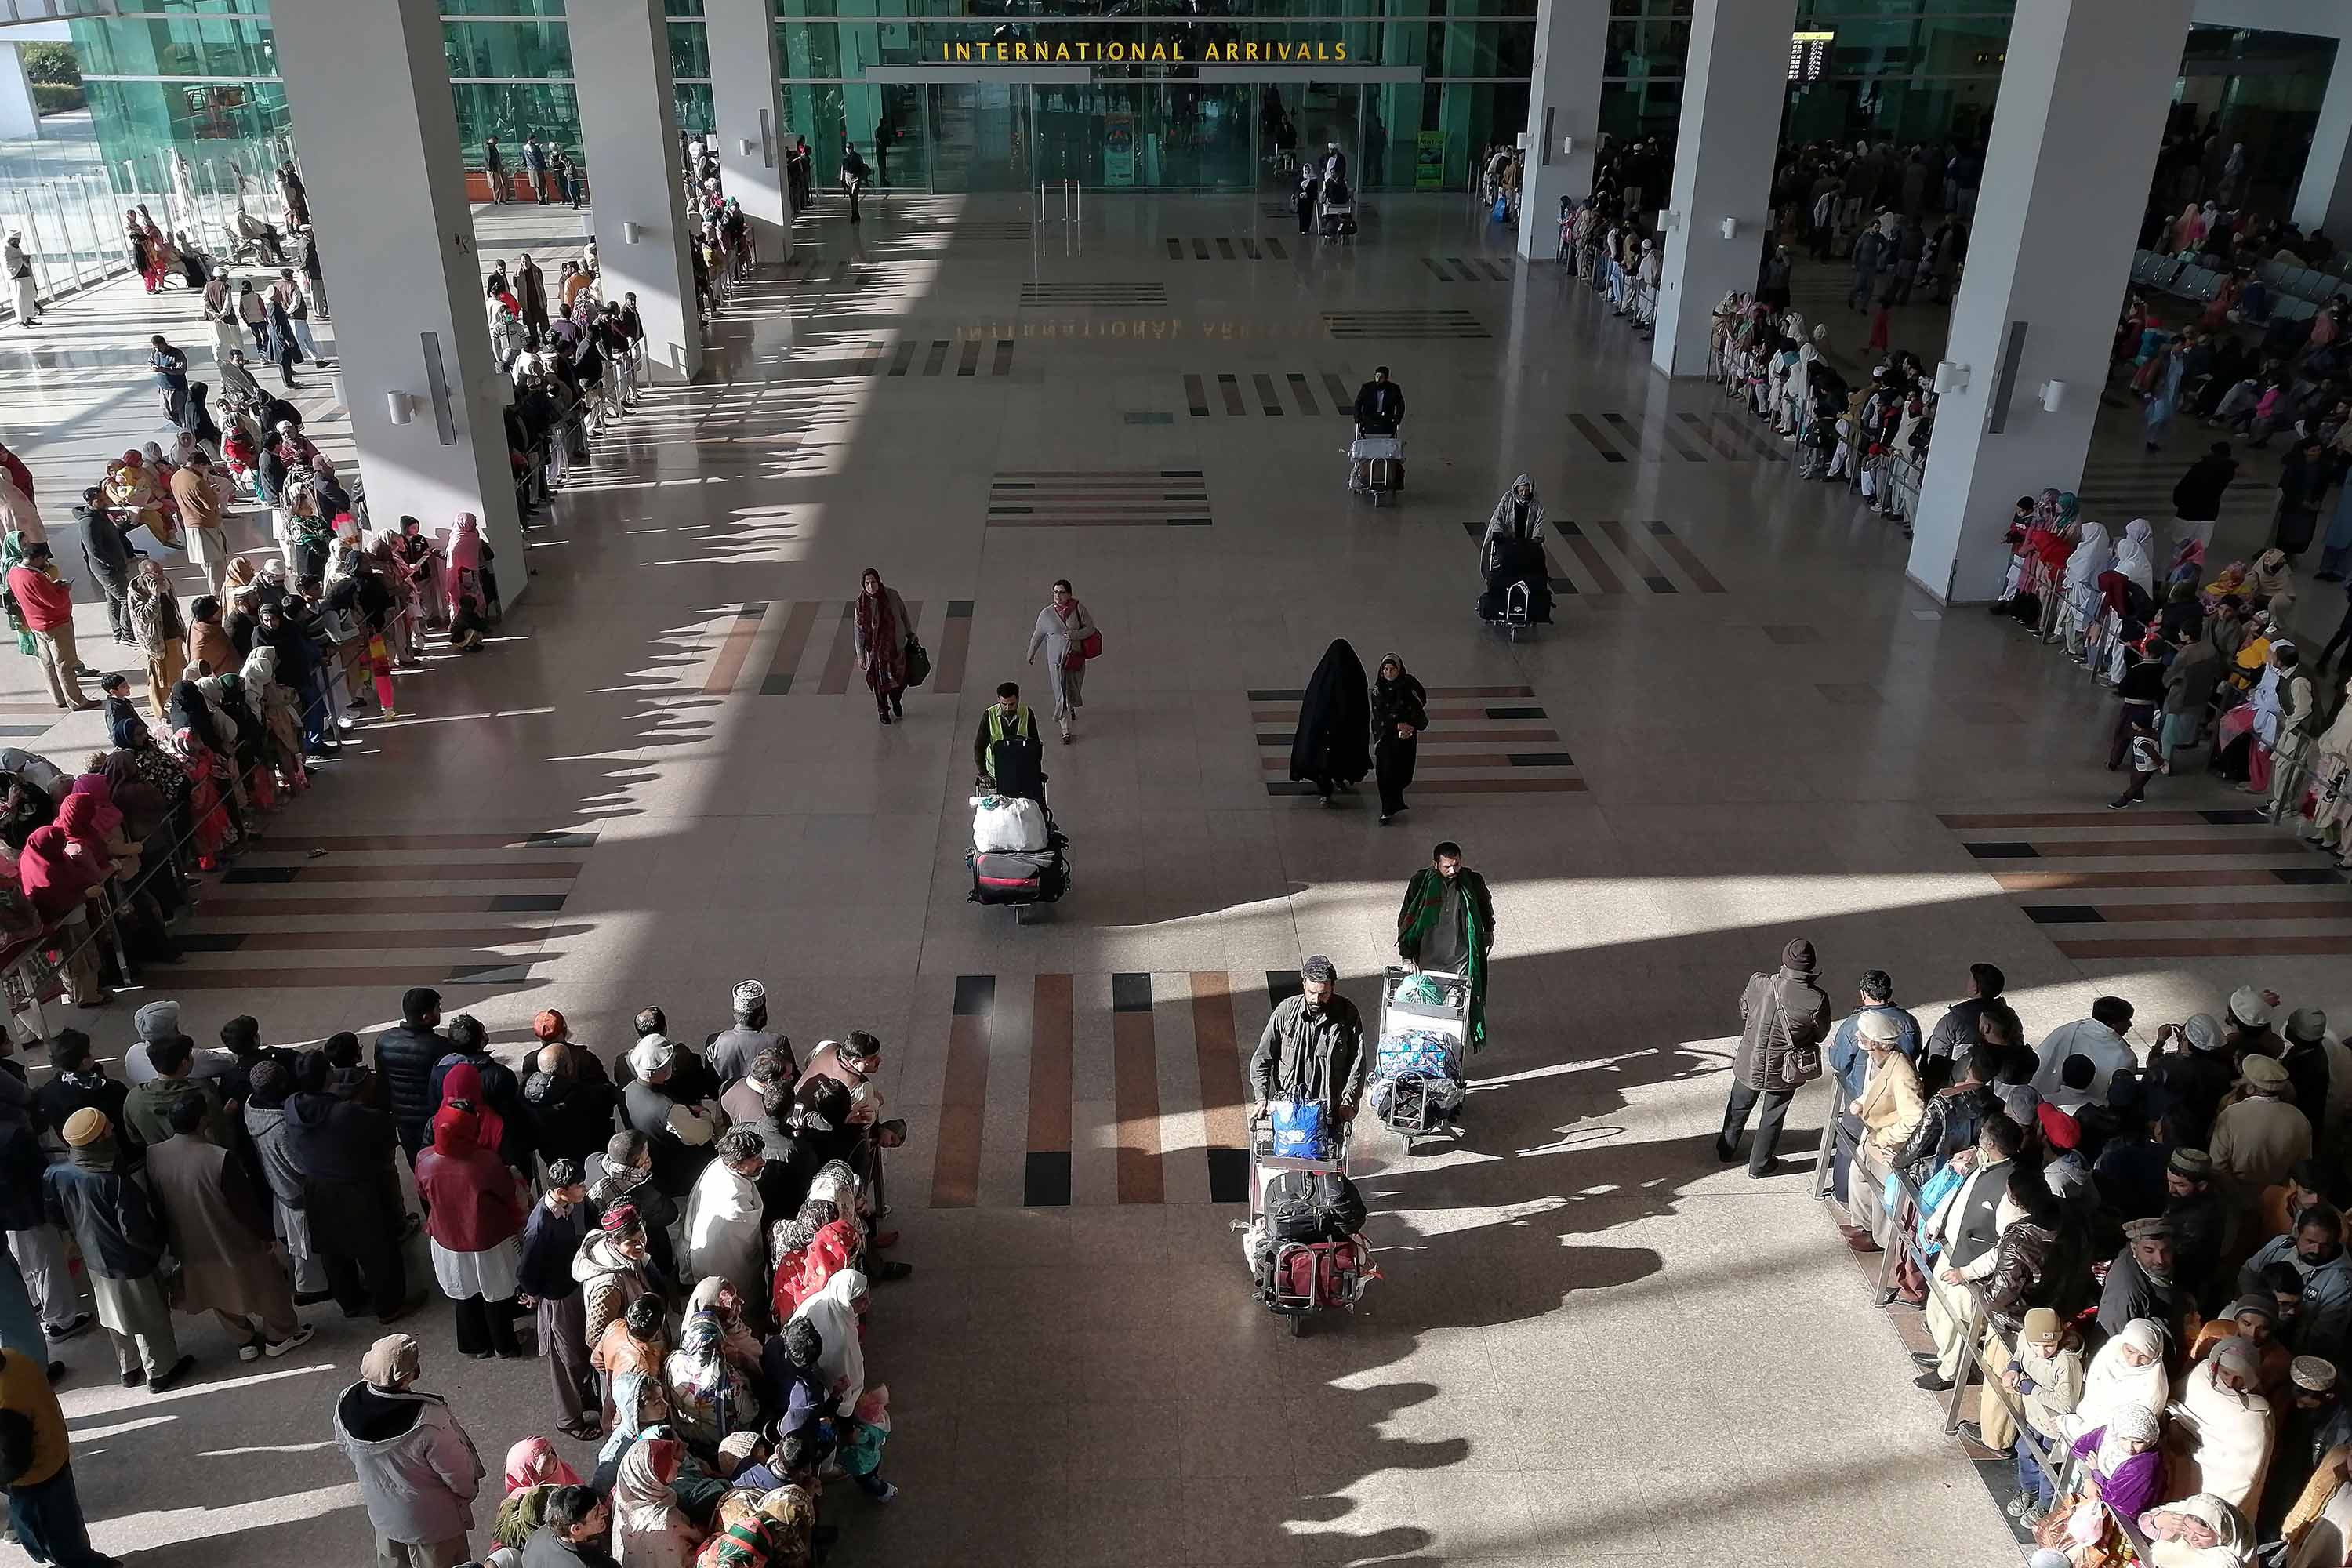 People gather to receive arriving passengers at the Islamabad International Airport in Pakistan on Monday.